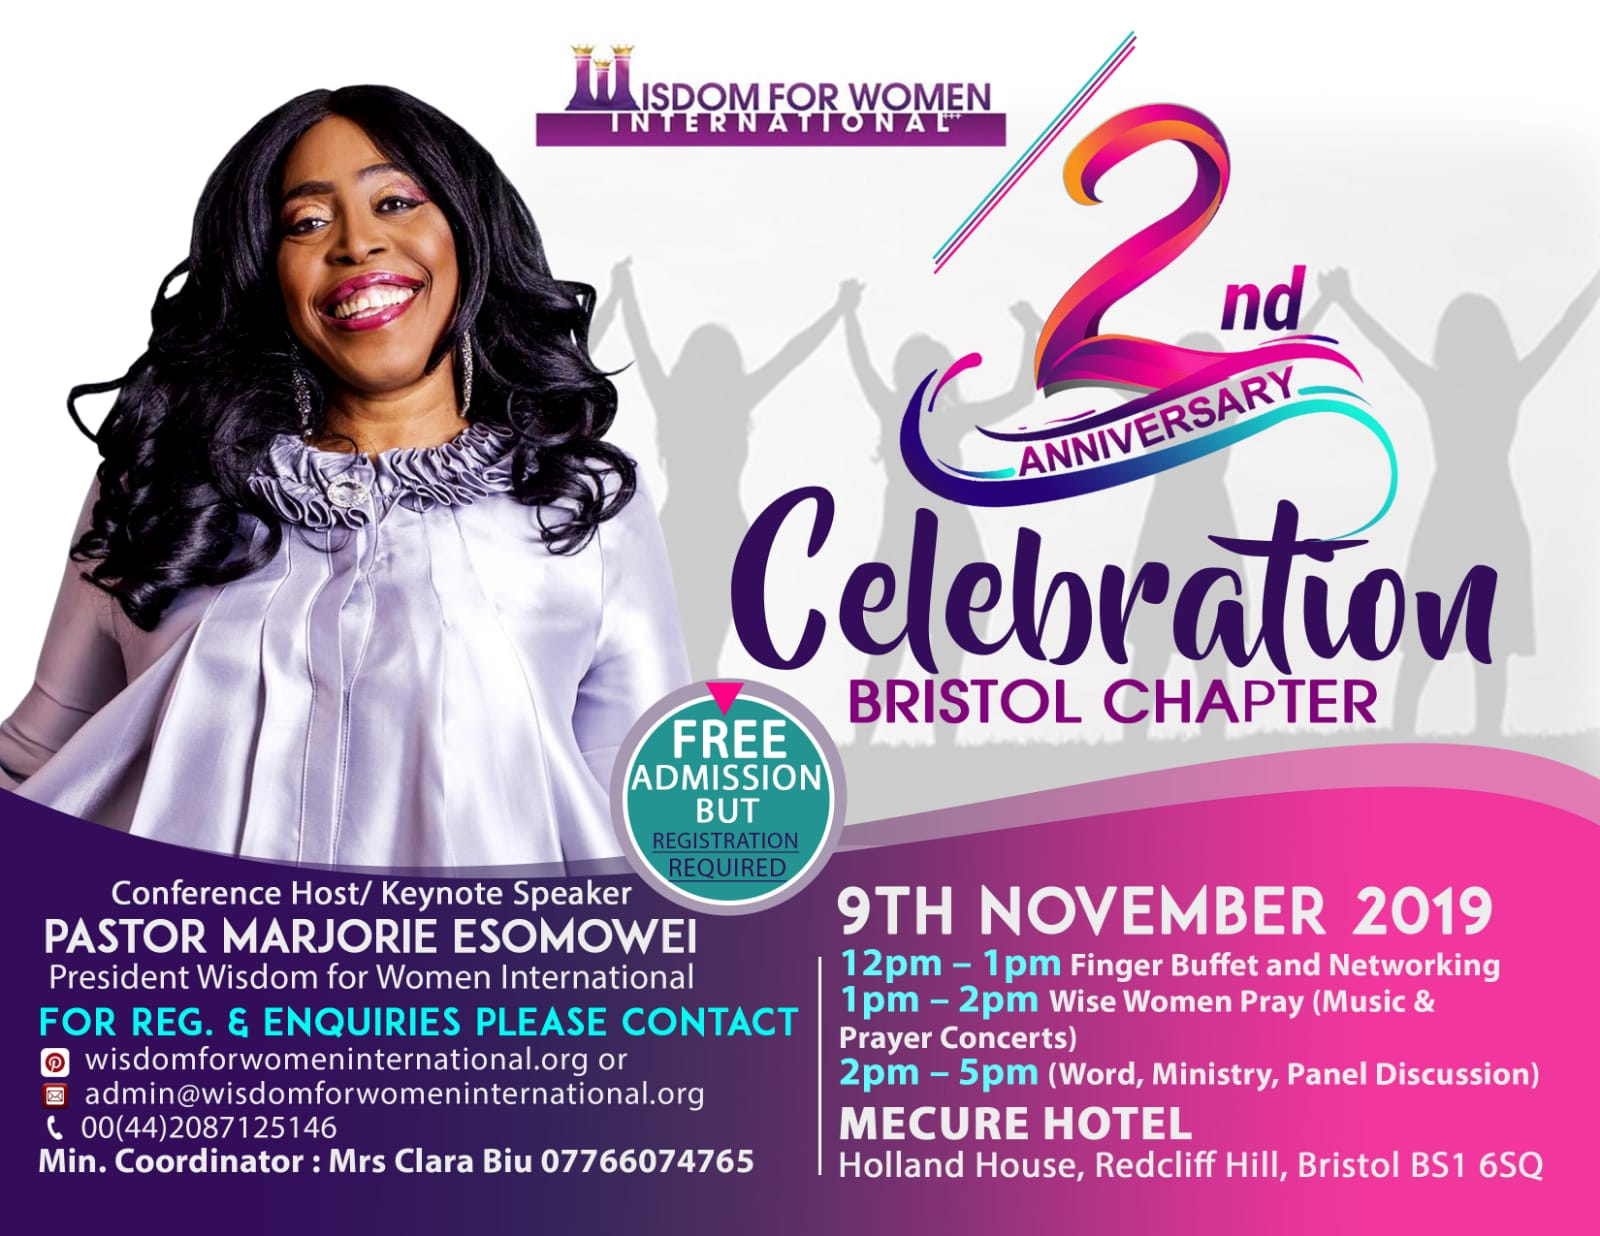 2nd Anniversary Celebration Bristol Chapter